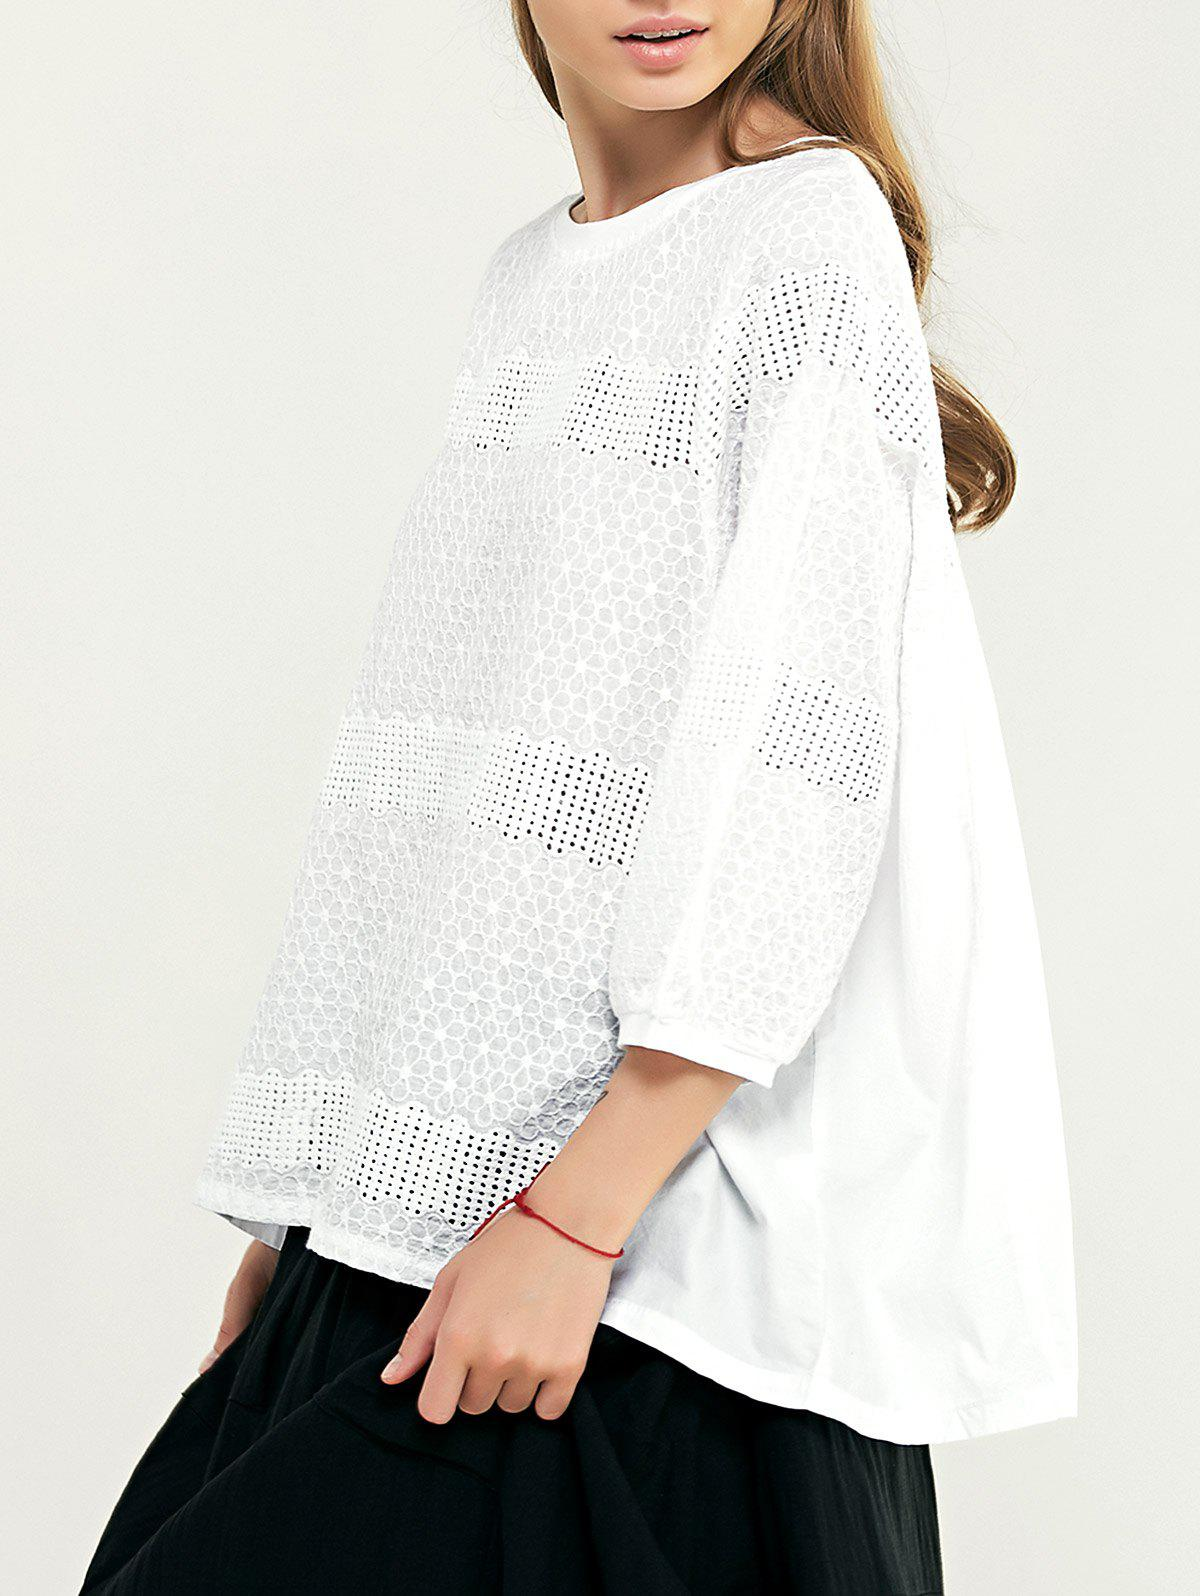 Simple Women's Openwork Floral Embroidered Blouse - WHITE M